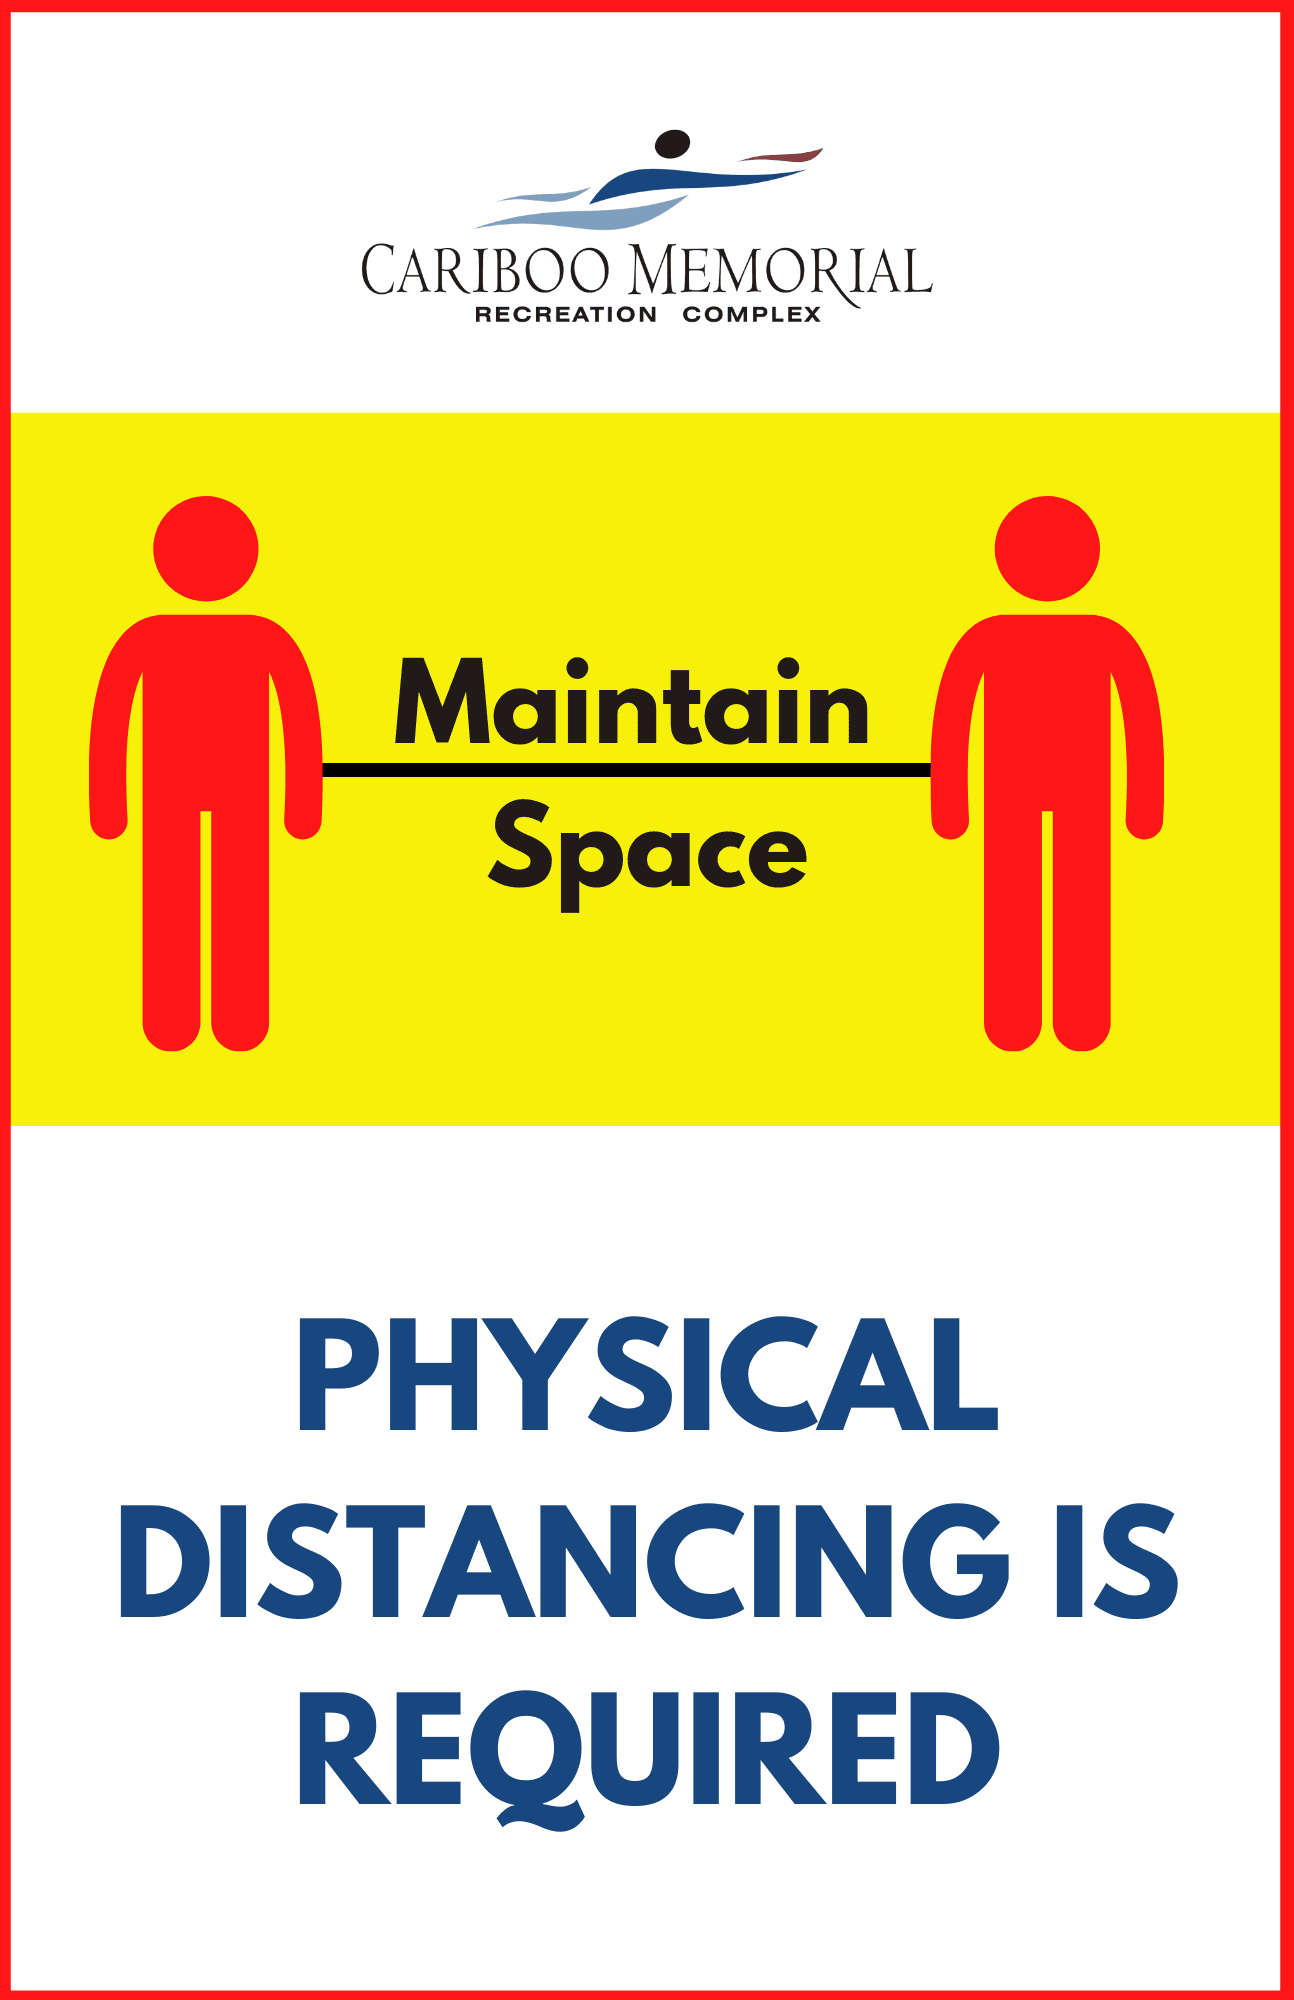 Copy of Physical Distancing is required